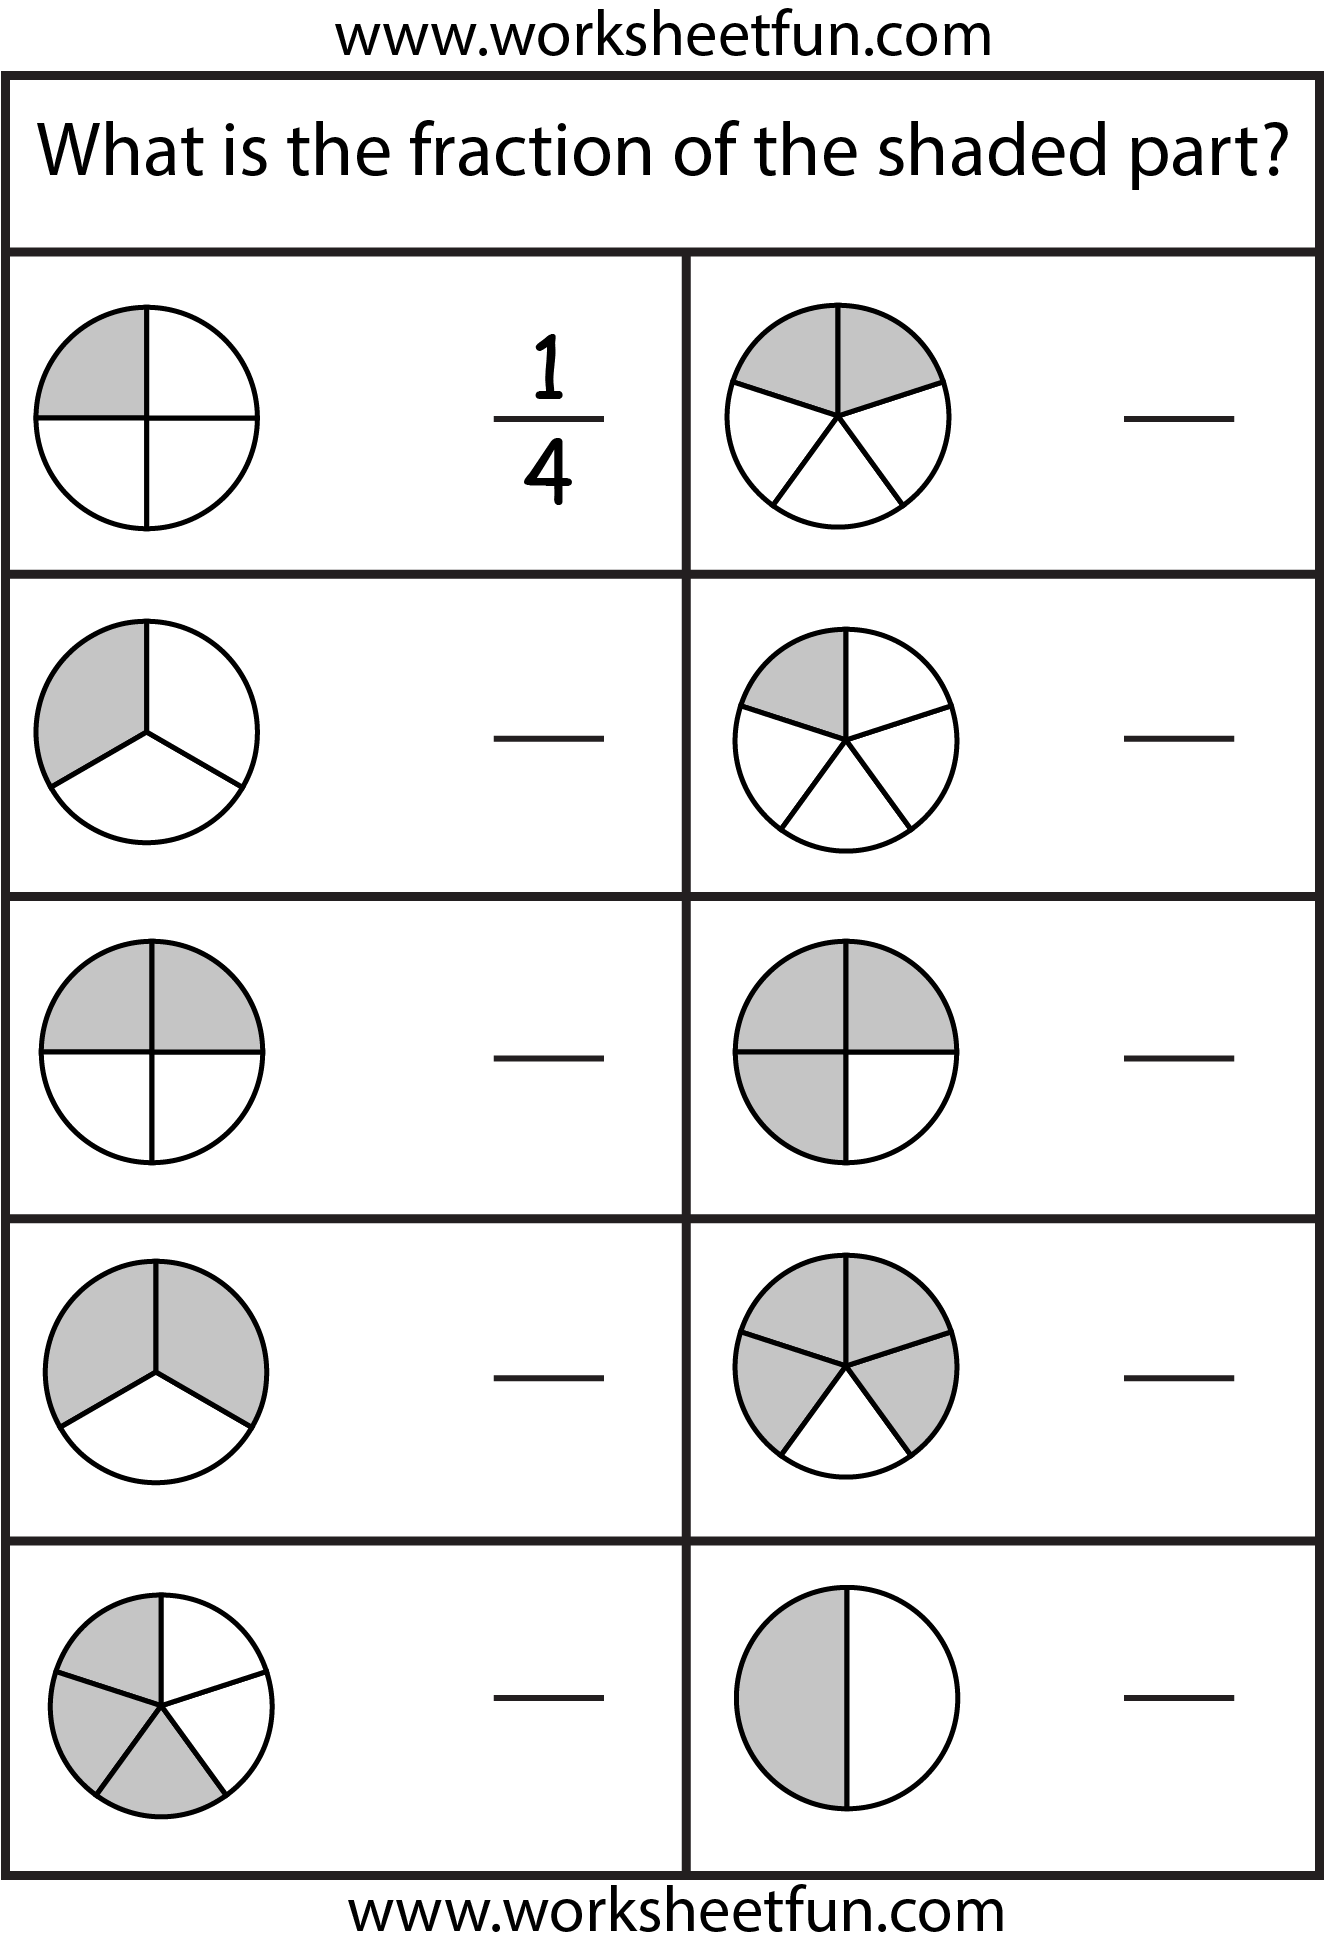 Worksheets Fraction Worksheets For 1st Grade equivalent fractions worksheet free printable worksheets worksheetfun